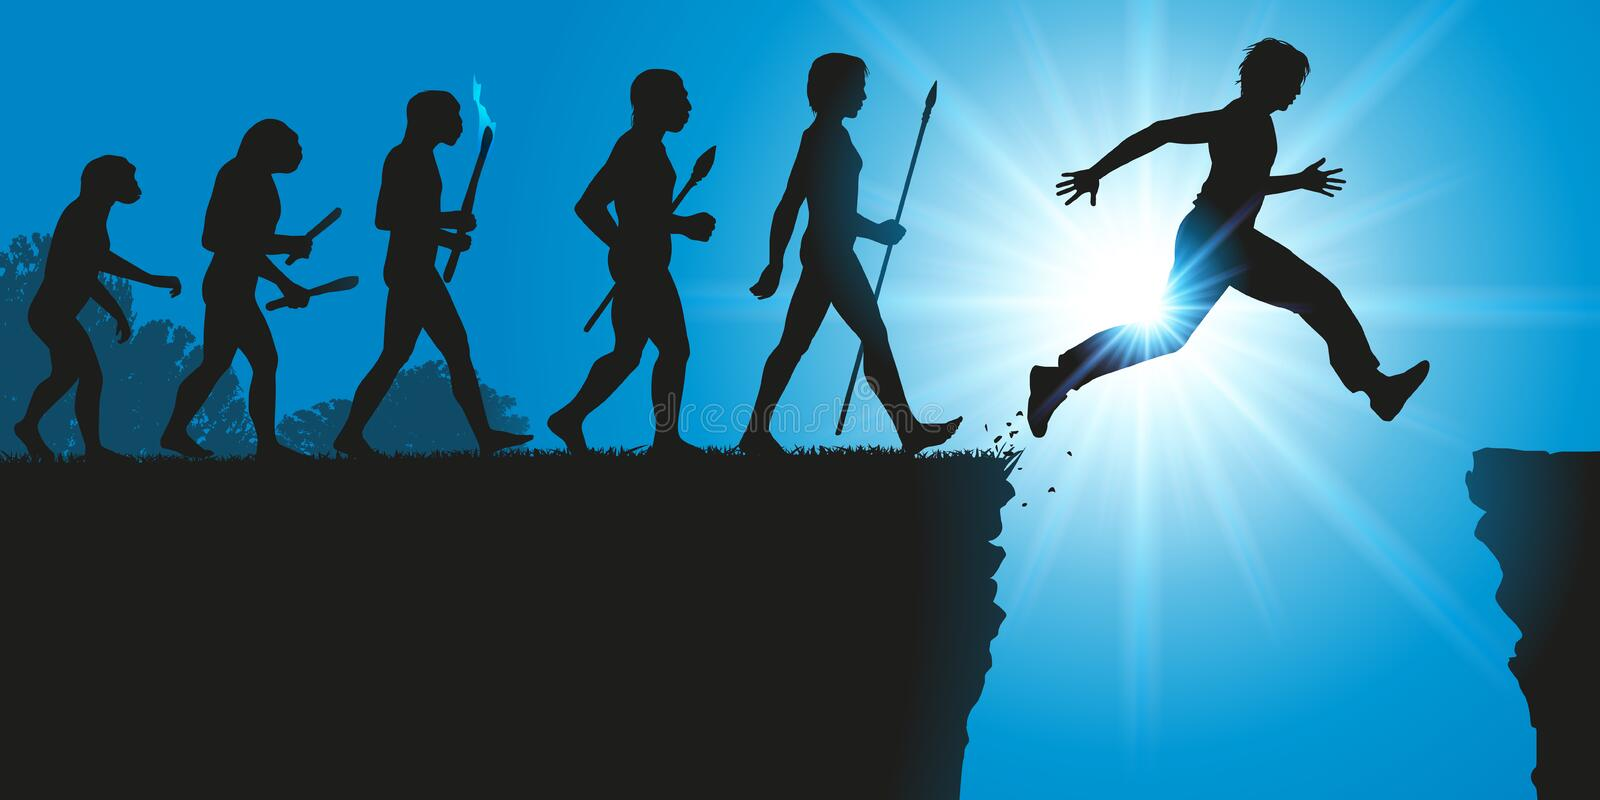 Concept of the evolution of humanity with a leap into the unknown. The theory of Darwin's evolution with a man who spans a crevasse symbolizing the vector illustration